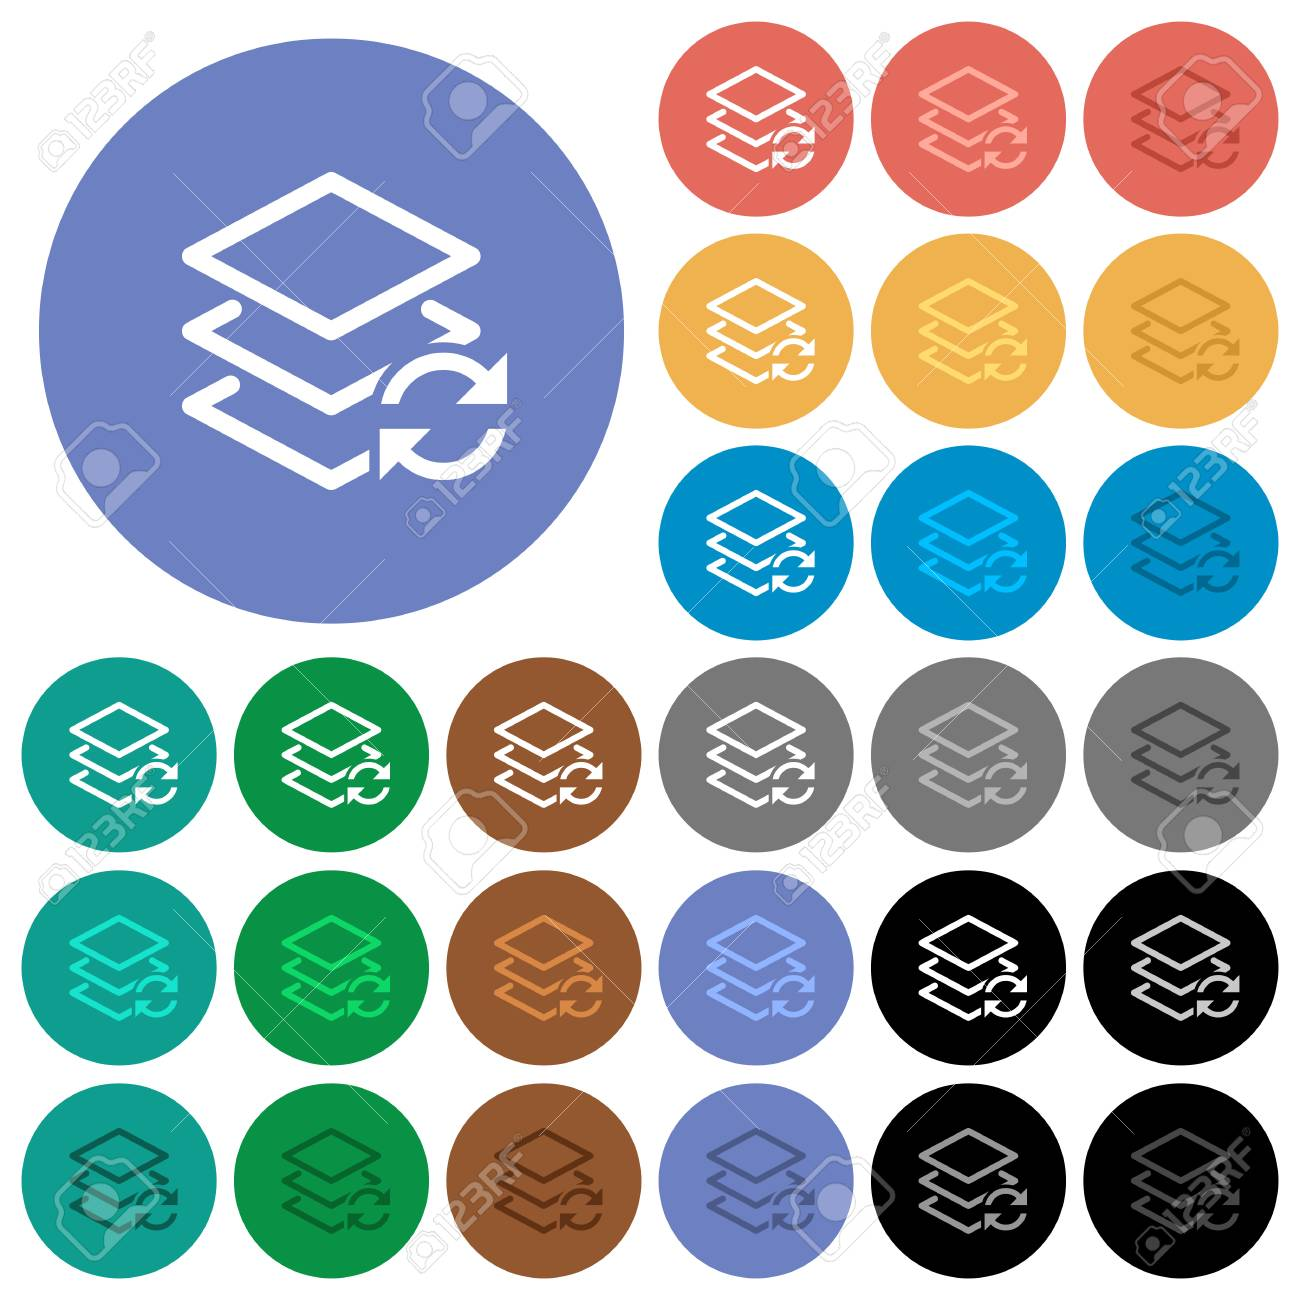 Swap layers multi colored flat icons on round backgrounds  Included